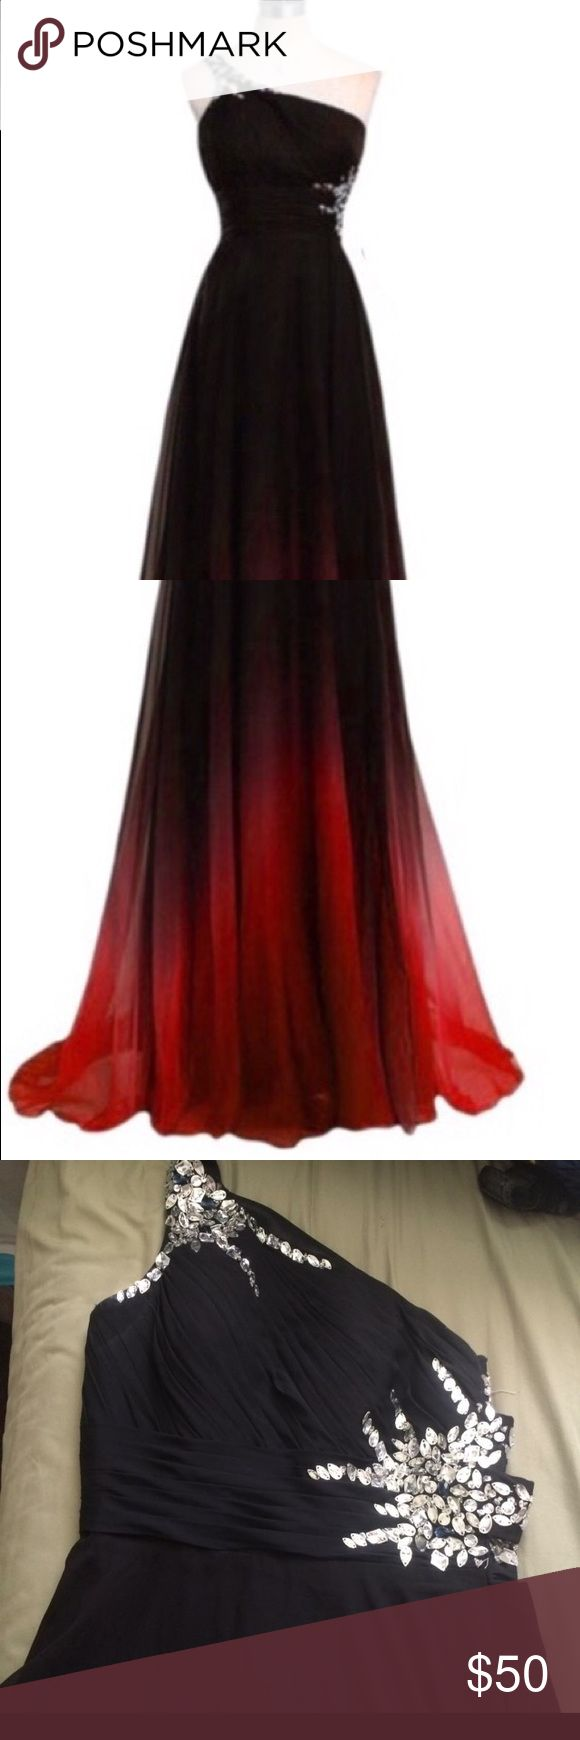 Black and red ombre prom dress Red and black ombre prom dress w/ sequins. Worn once. Dresses Prom